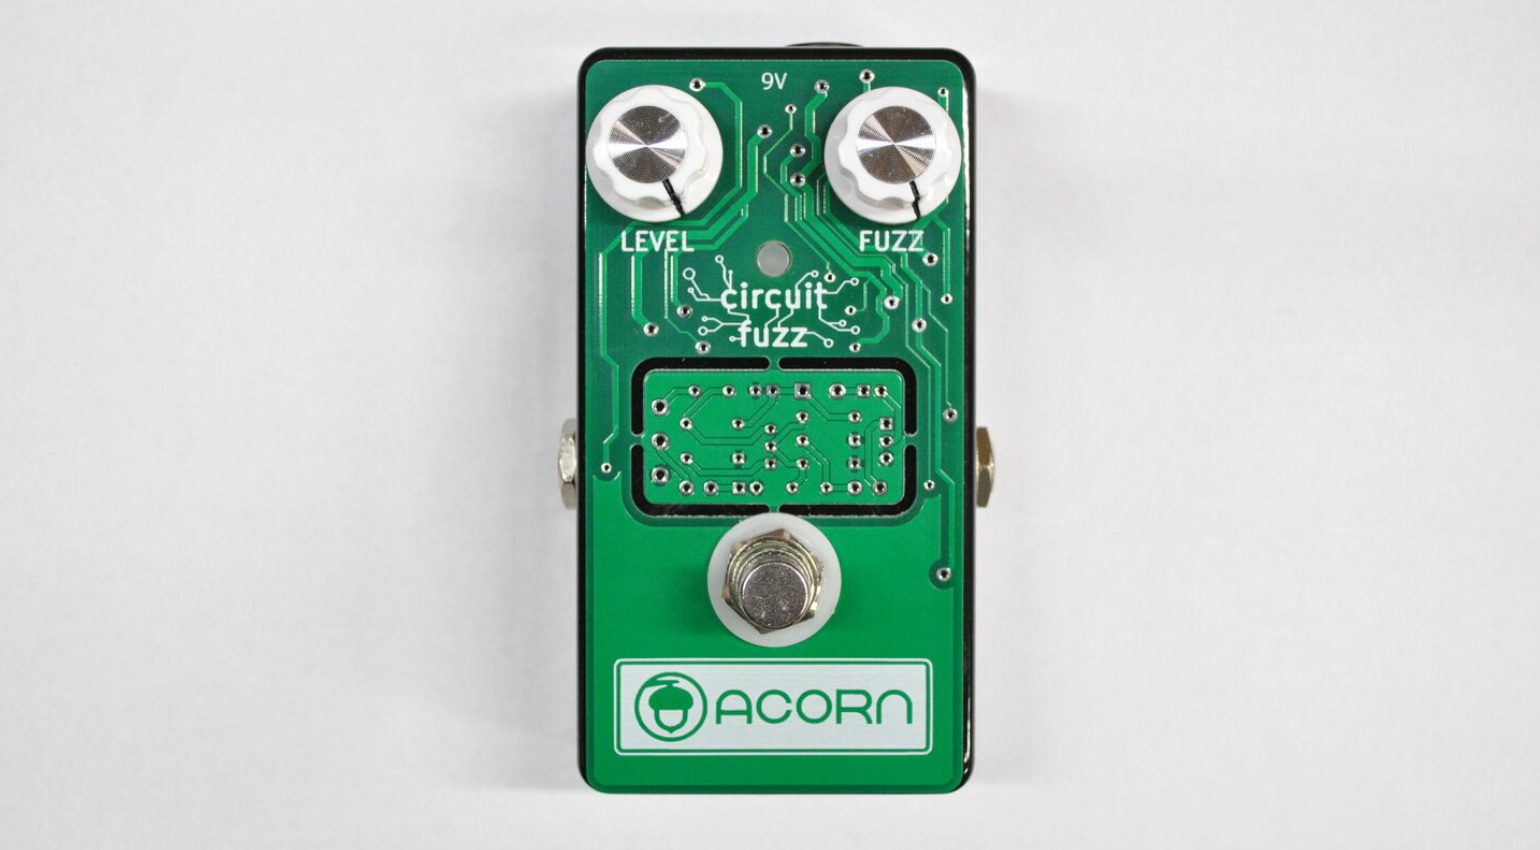 Acorn Amplifiers Circuit Fuzz Boost Pedal DIY PCB Front